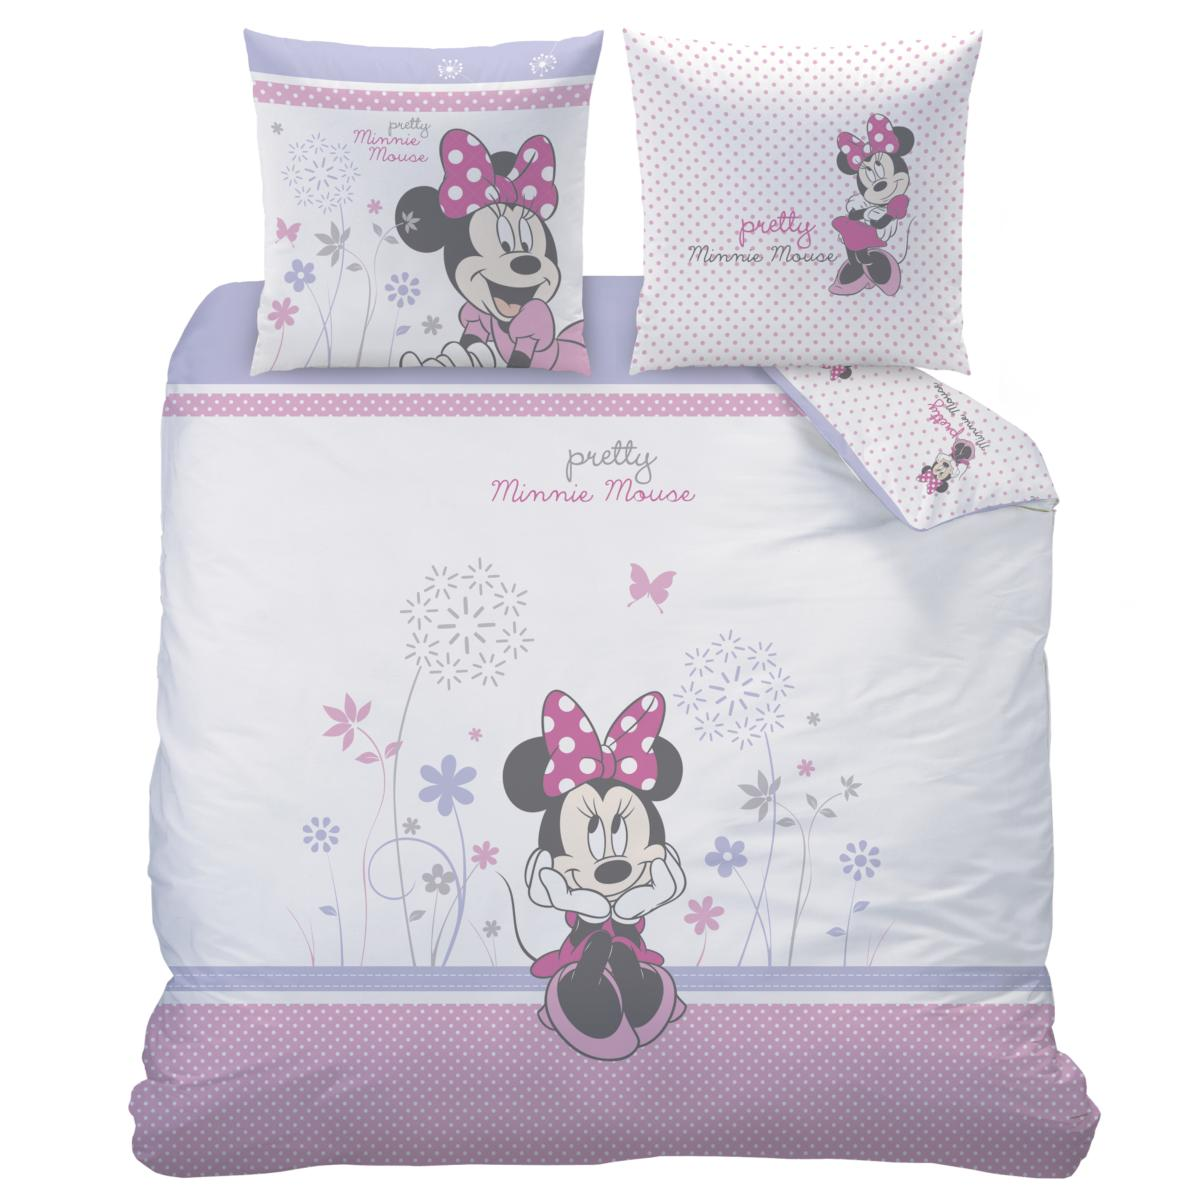 parure housse de couette minnie poetic flower 220x240cm 100 coton j k markets. Black Bedroom Furniture Sets. Home Design Ideas